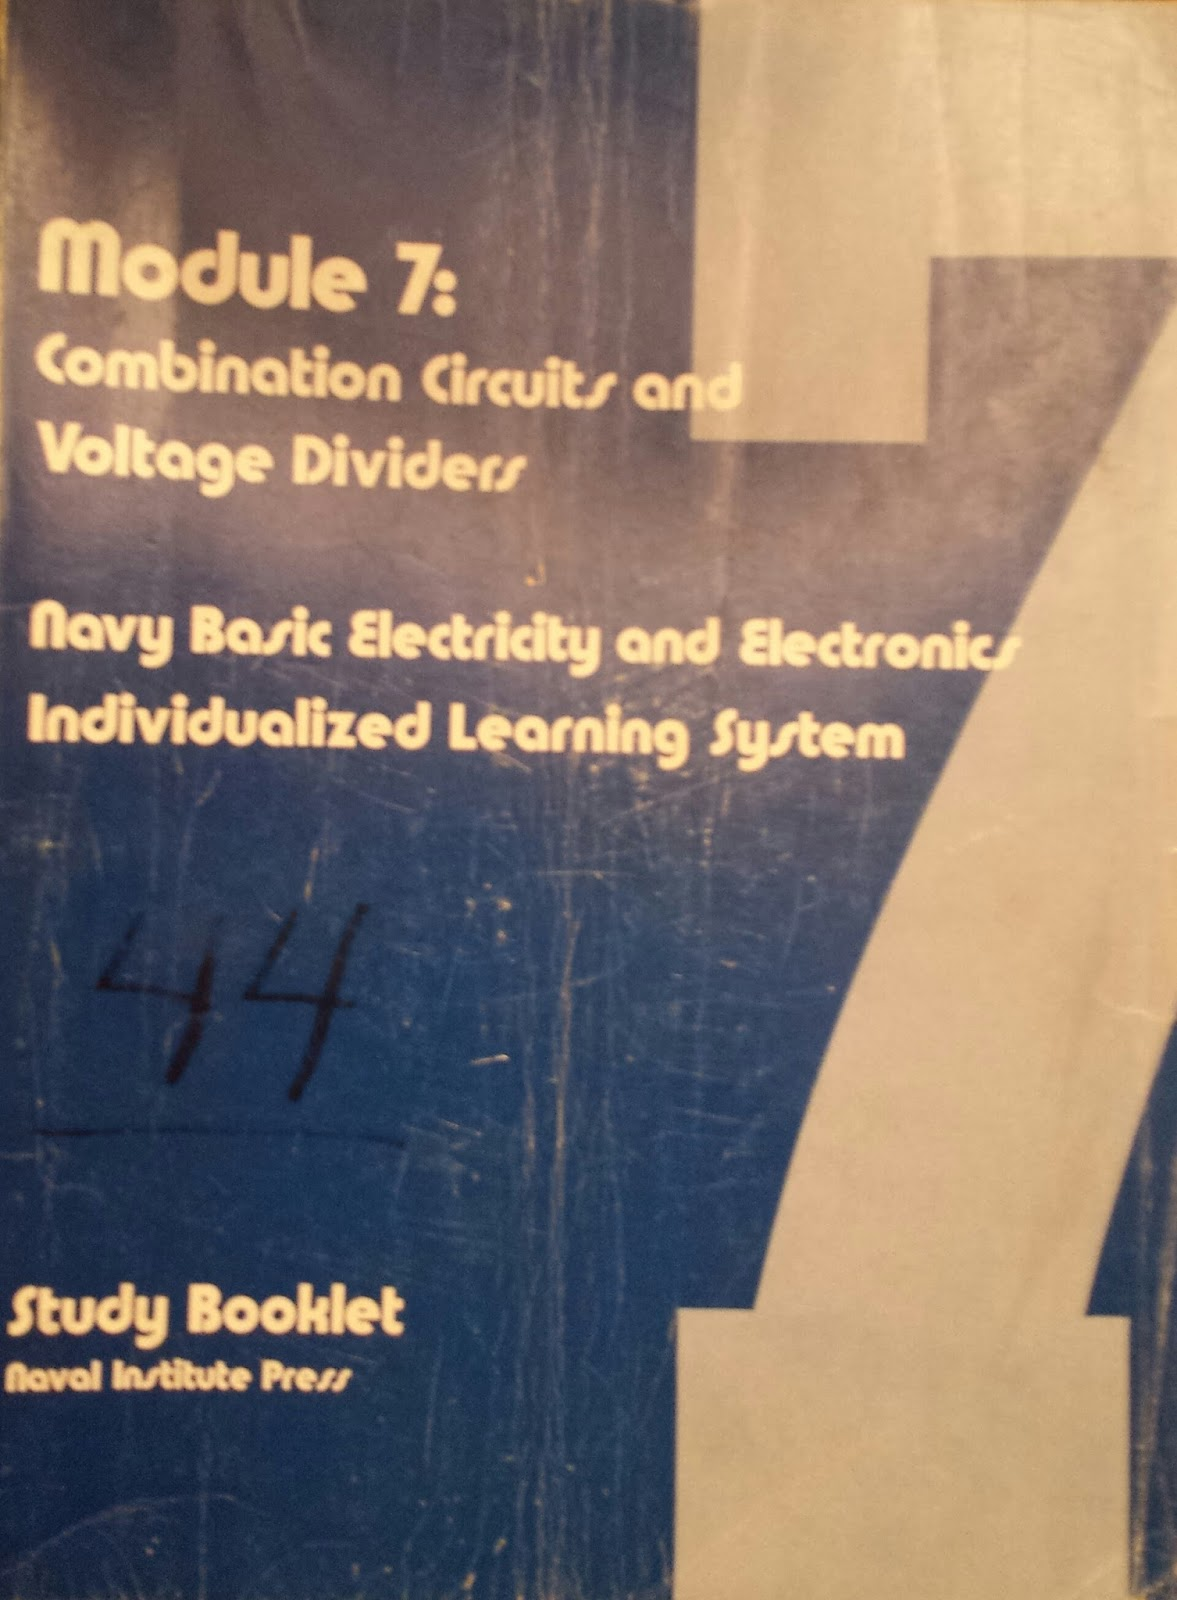 Common Denominator 73 Voltage Dividers Divider Circuit This Is The Final Section Of Module 7 In Navy Basic Electricity And Electronics Series A On Parallel Circuits